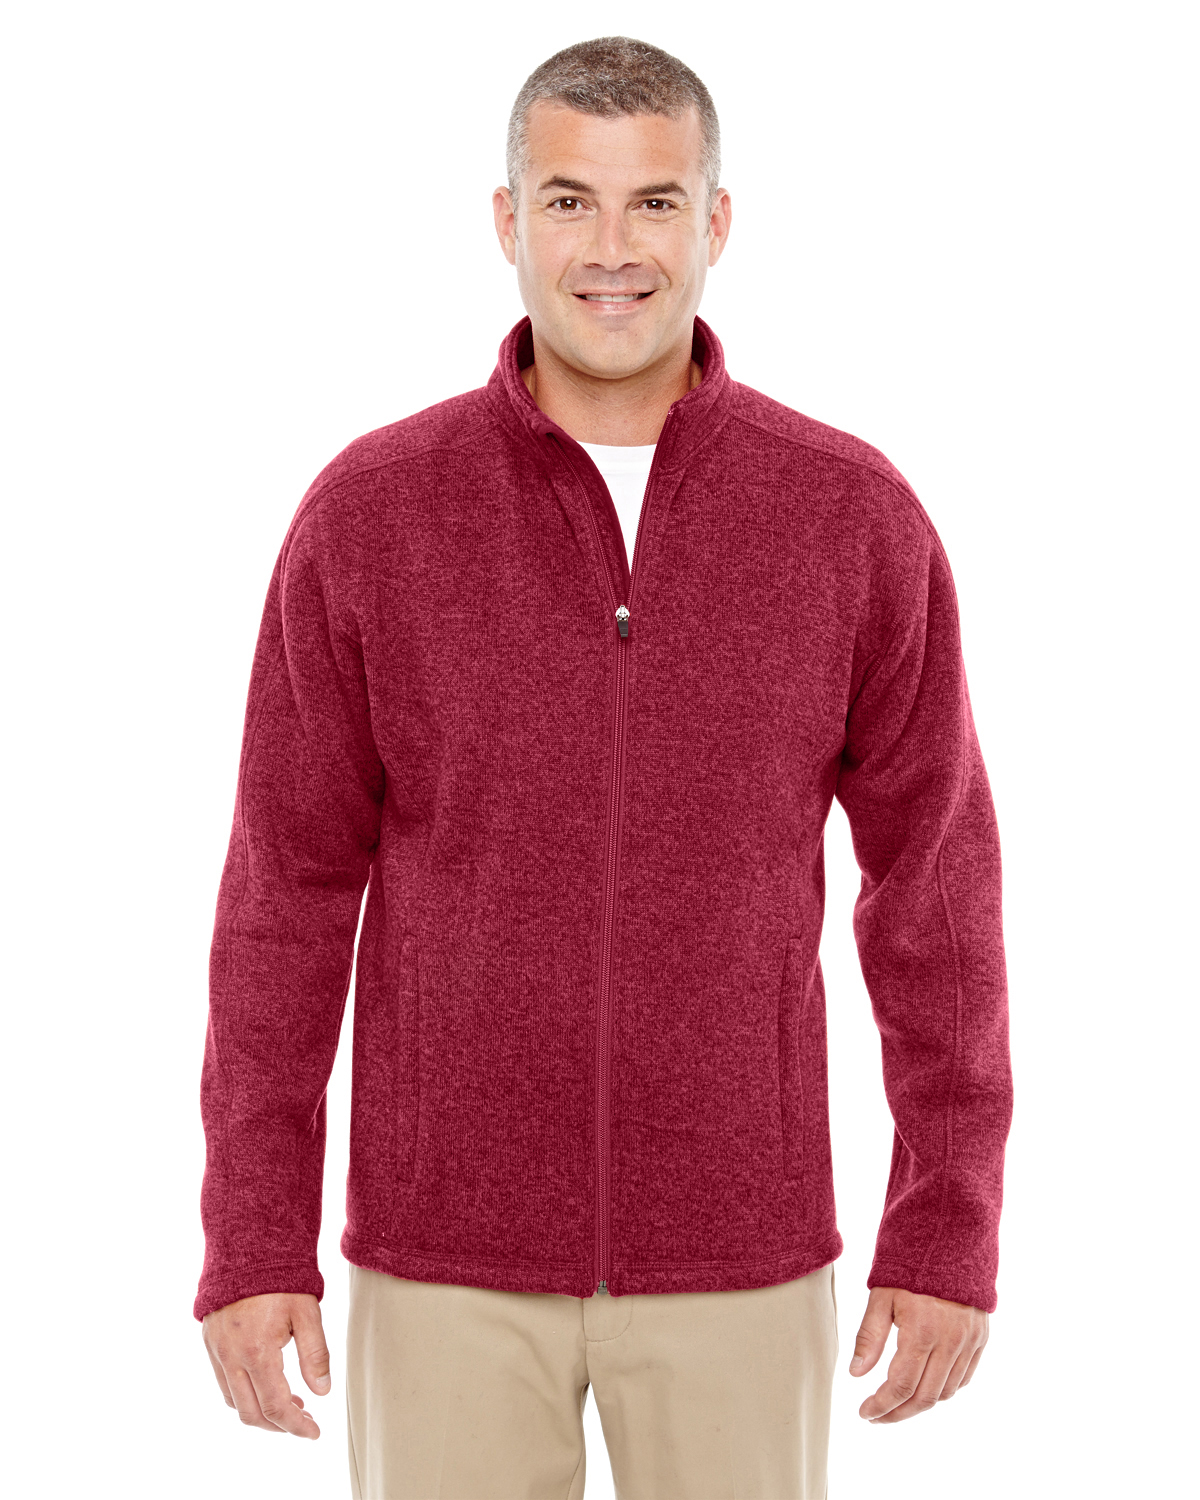 Devon & Jones - DG793 Men's Bristol Full-Zip Sweater Fleece Jacket